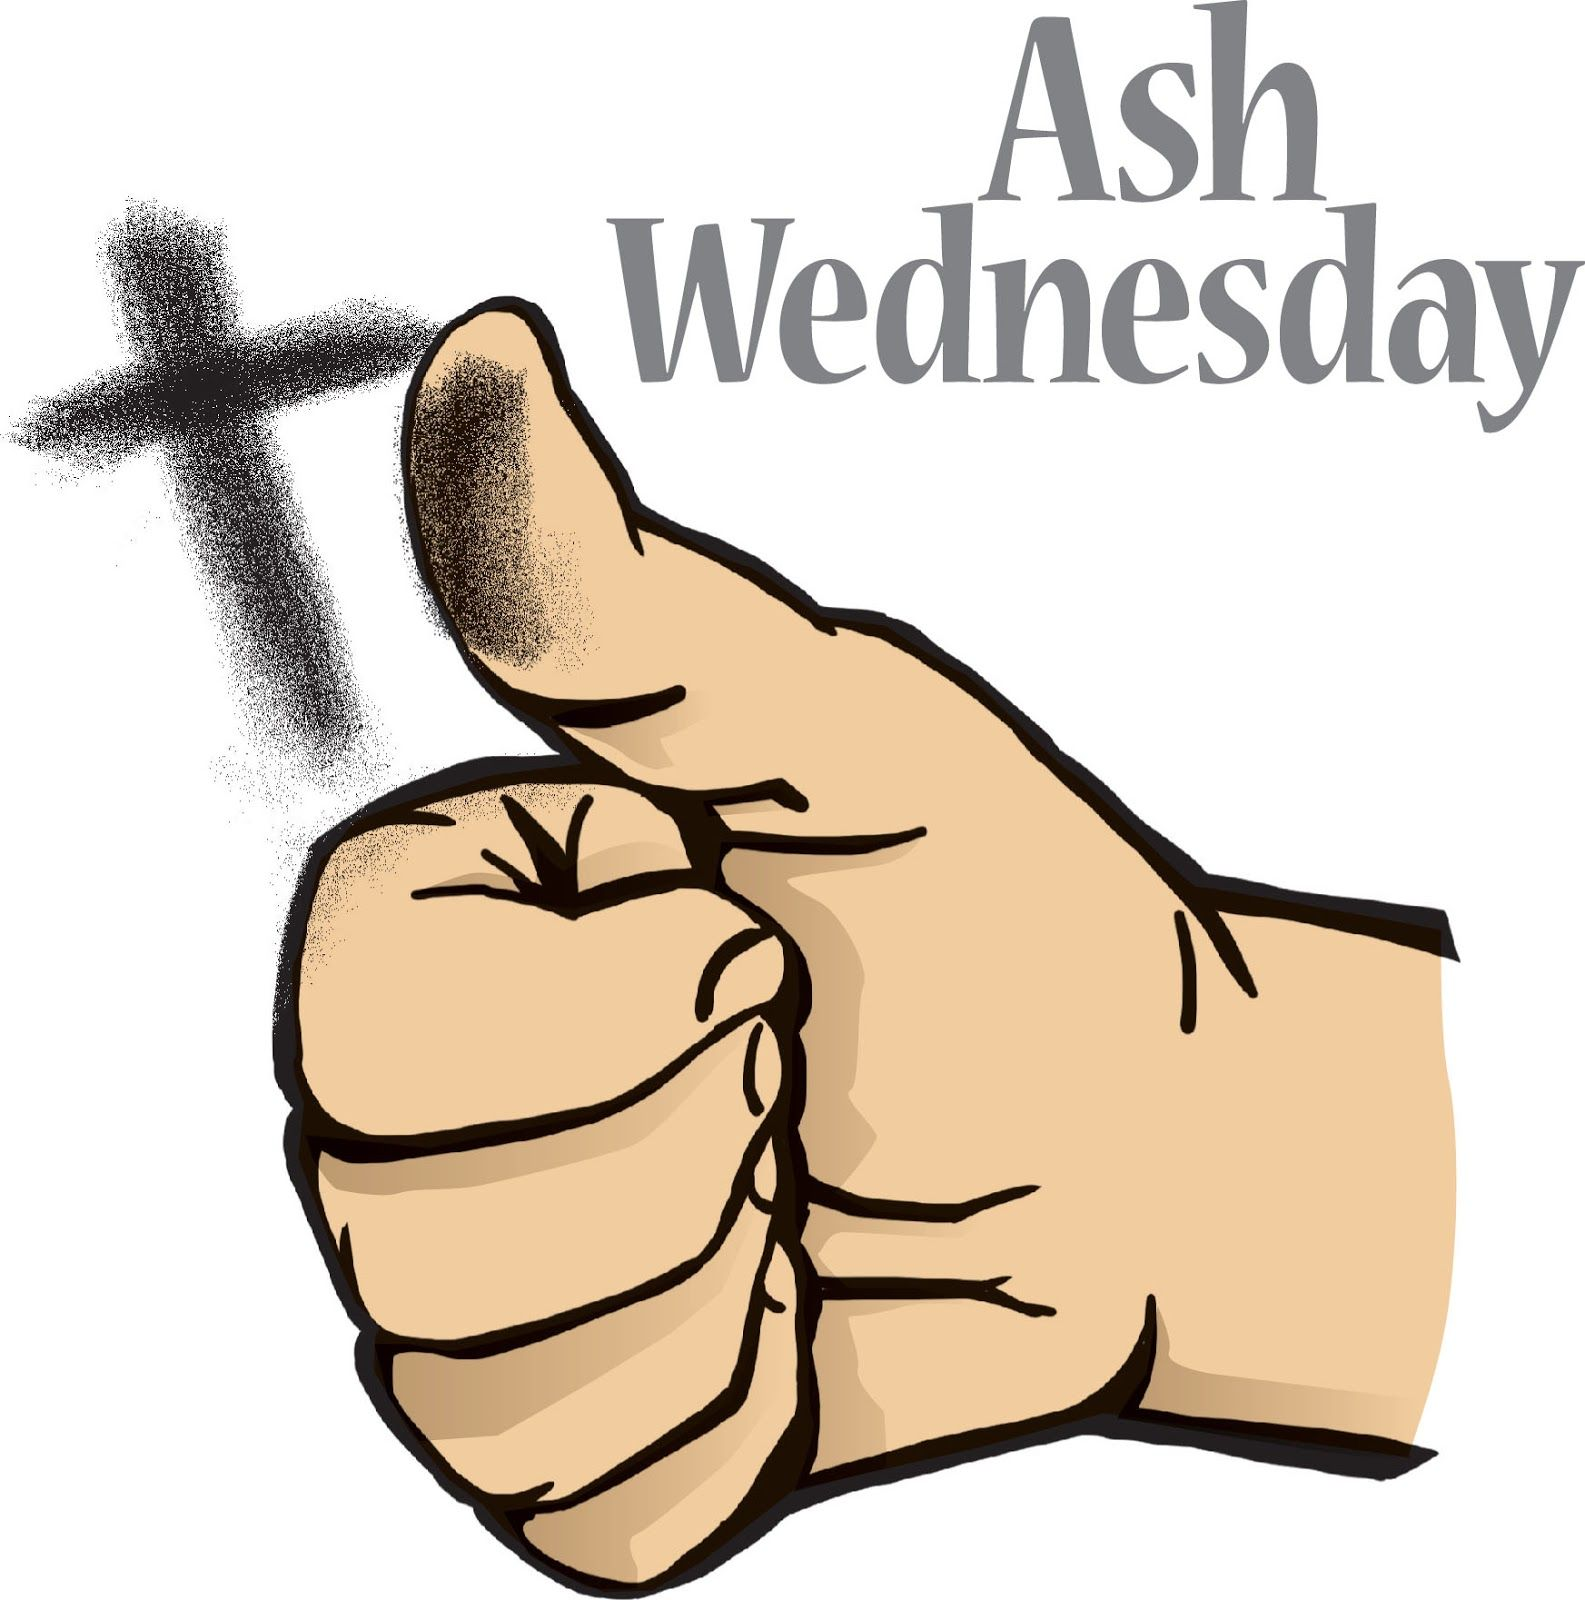 47+ Ash wednesday clipart graphics information